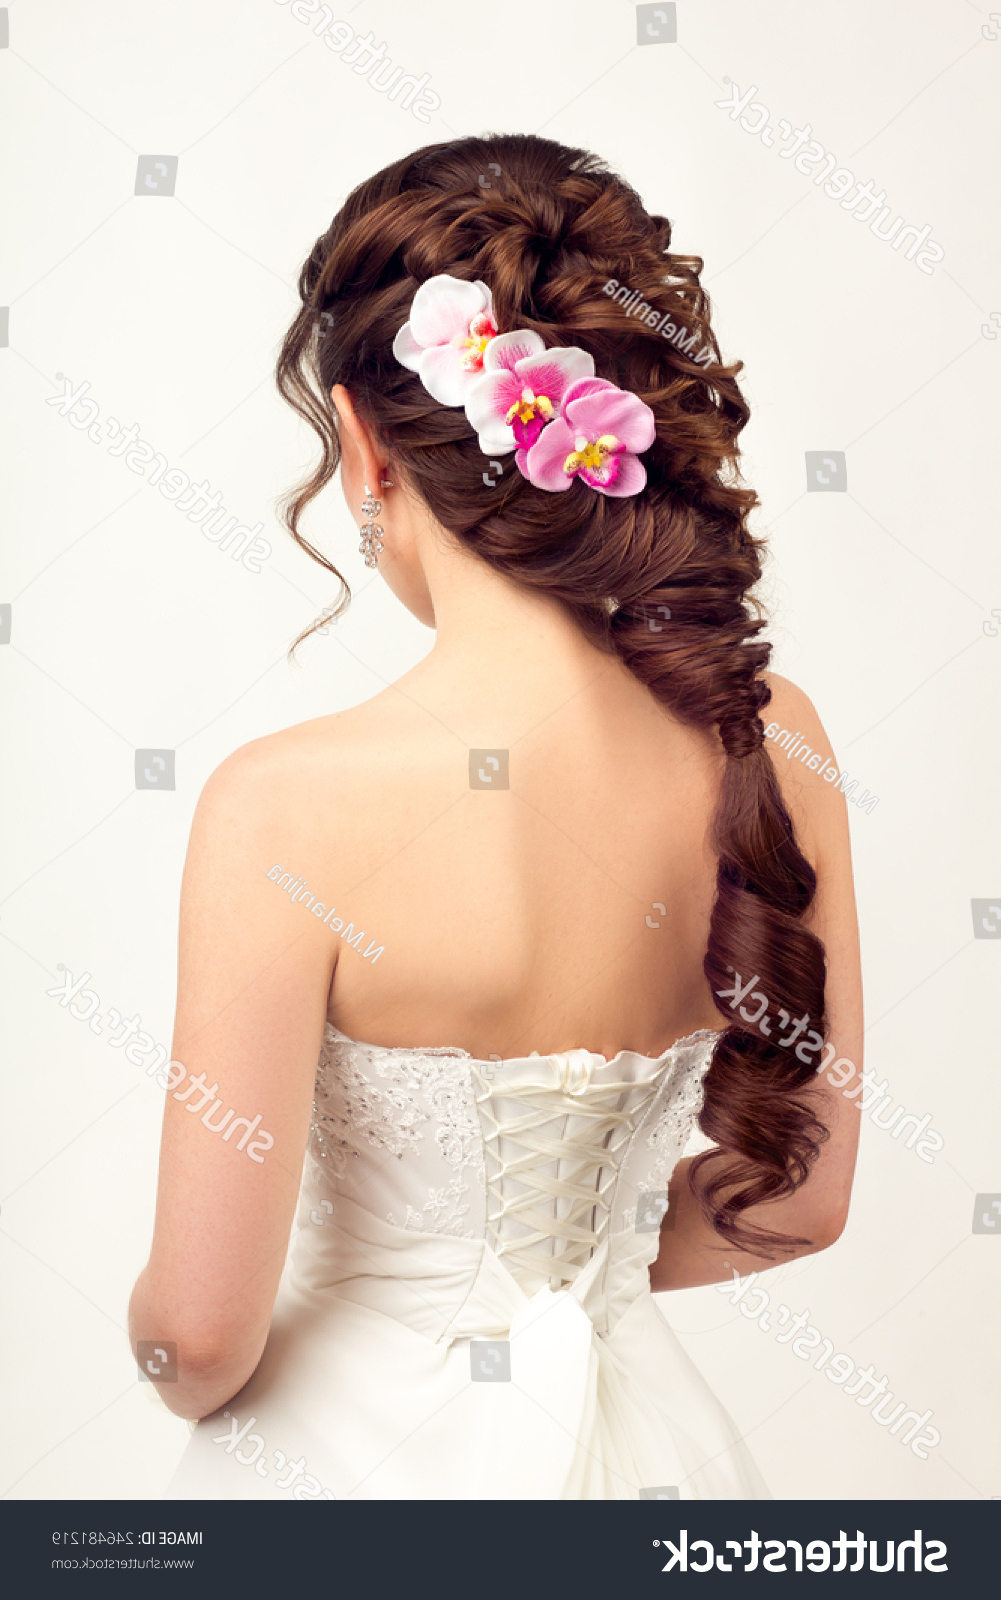 Girl Wedding Hairstyle Braid Purple Orchid Stock Photo (Edit Now Within Recent Curly Wedding Hairstyles With An Orchid (View 6 of 20)